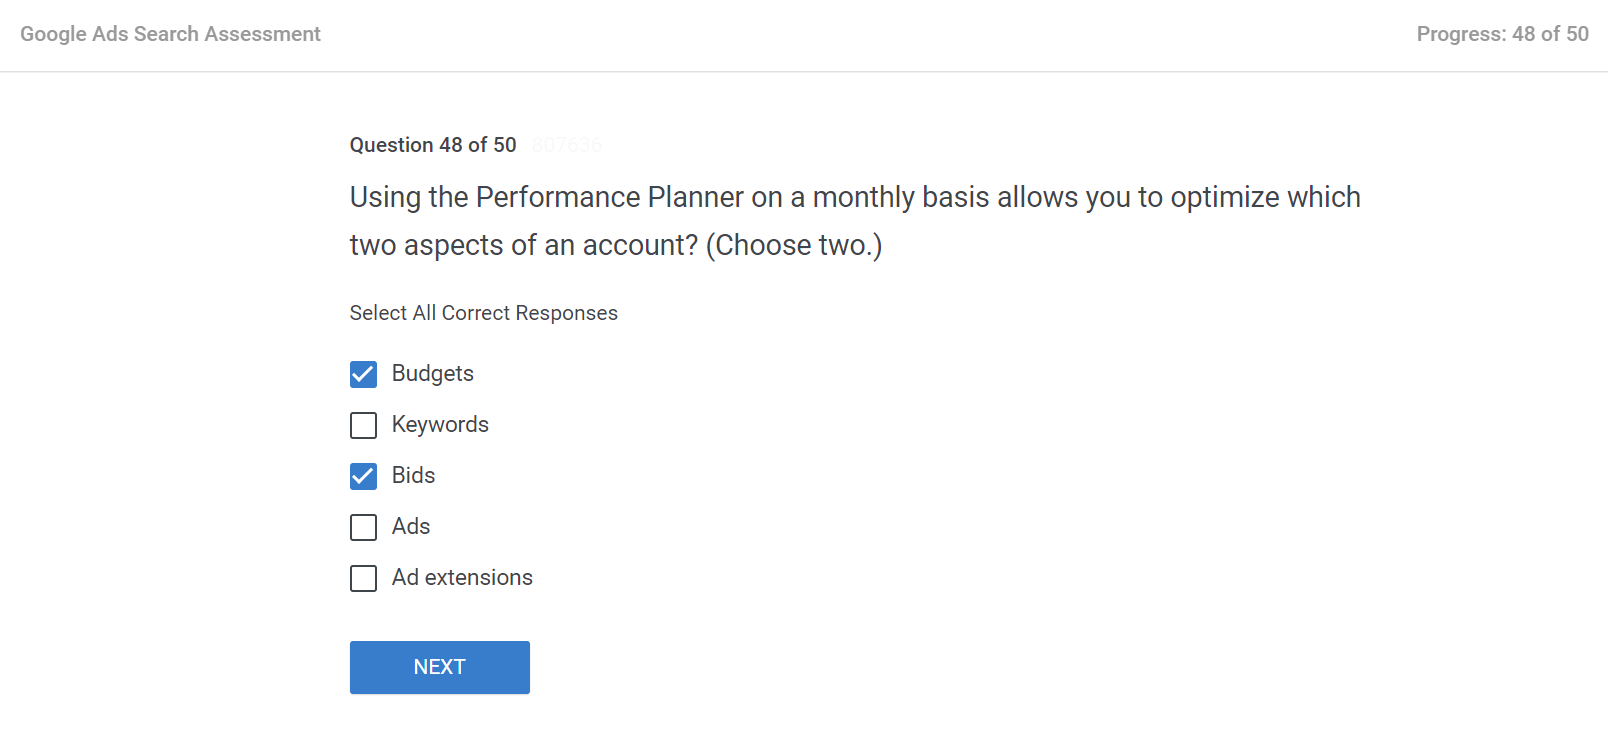 Using the Performance Planner on a monthly basis allows you to optimize which two aspects of an account